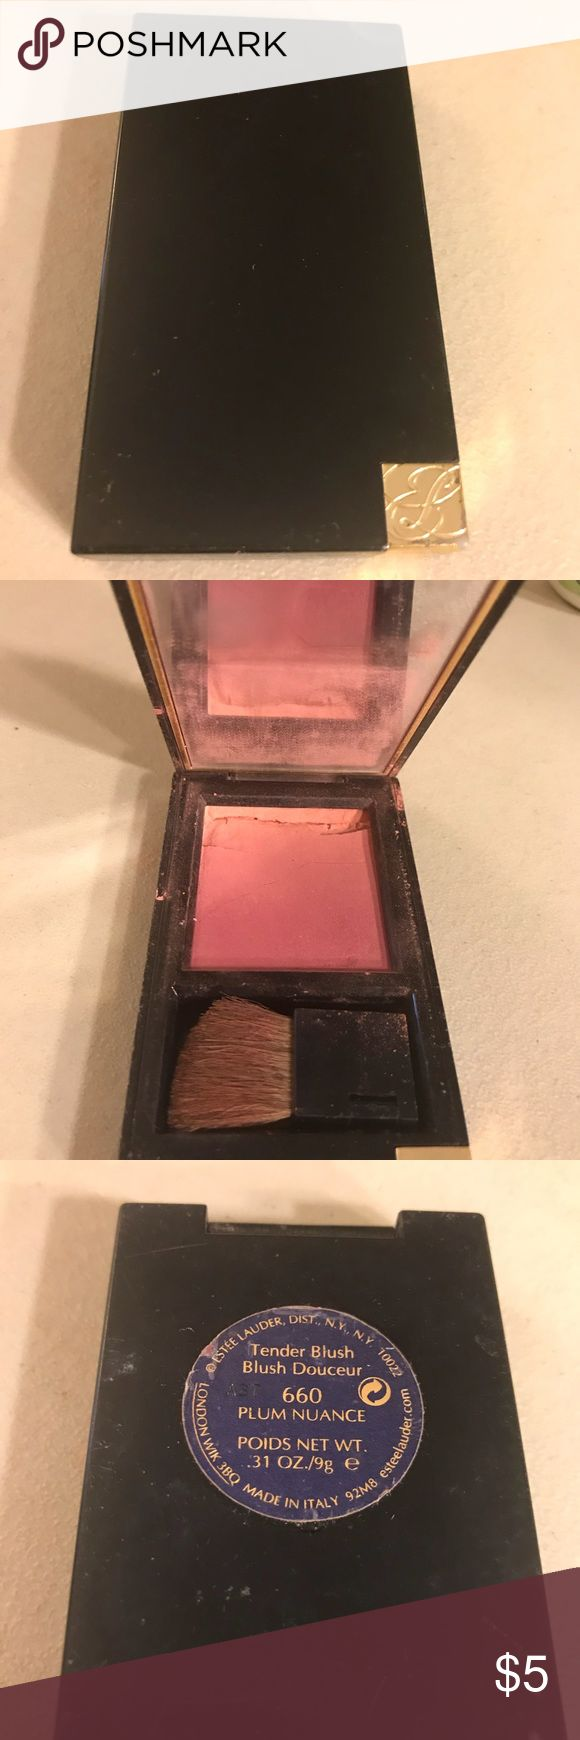 Estée Lauder tender blush Estée Lauder tender blush in color 660 plum nuance, used. Thanks for checking out Luxury1cosmetics!! Offers are welcomed, bundles are discounted!! Estee Lauder Makeup Blush